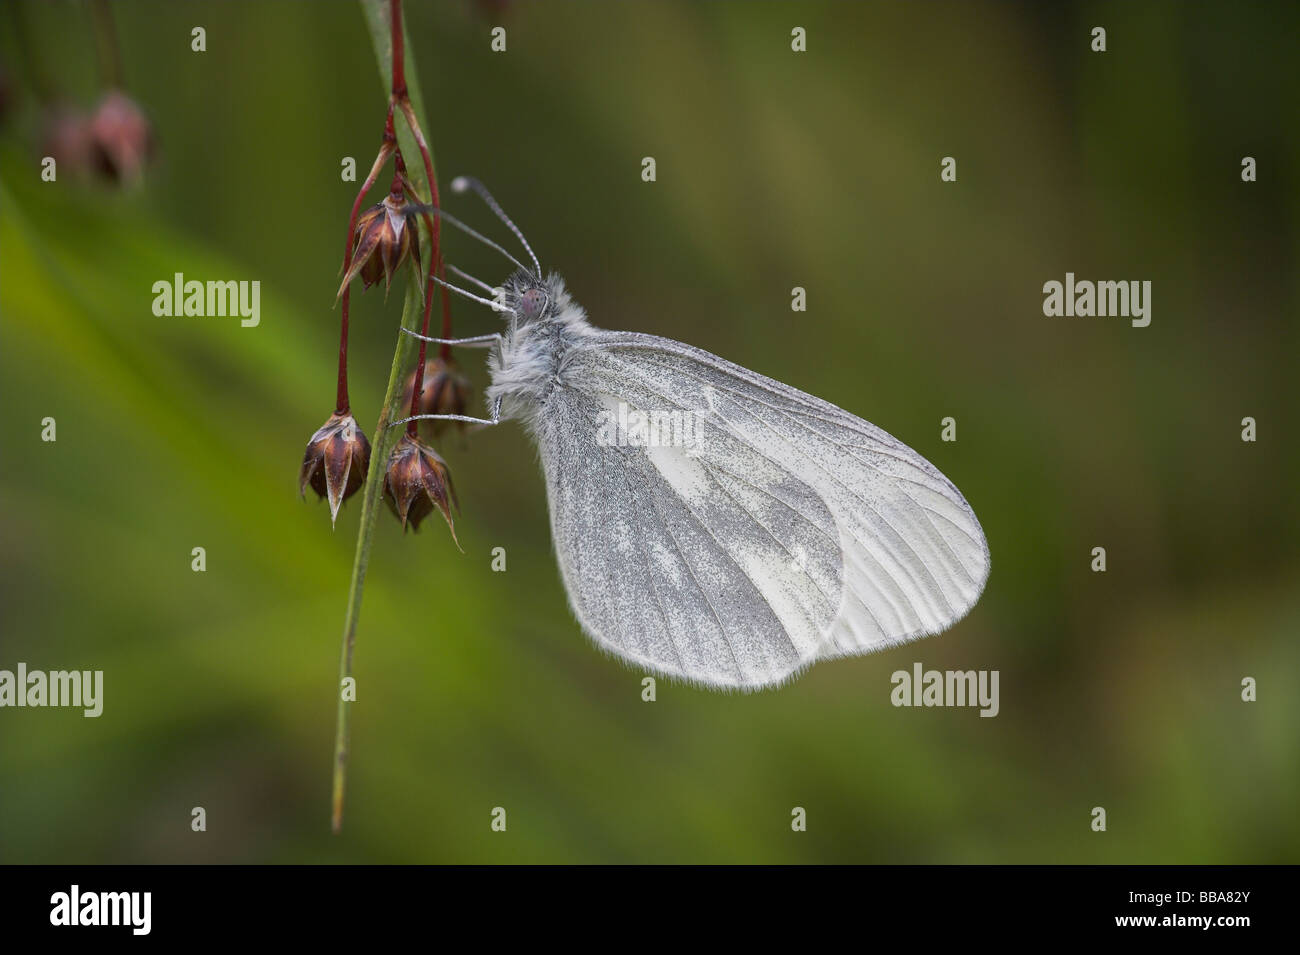 Wood White Leptidea sinapis perched on woodrush sp. Luzula sp. at Haugh Wood, Herefordshire in May. - Stock Image